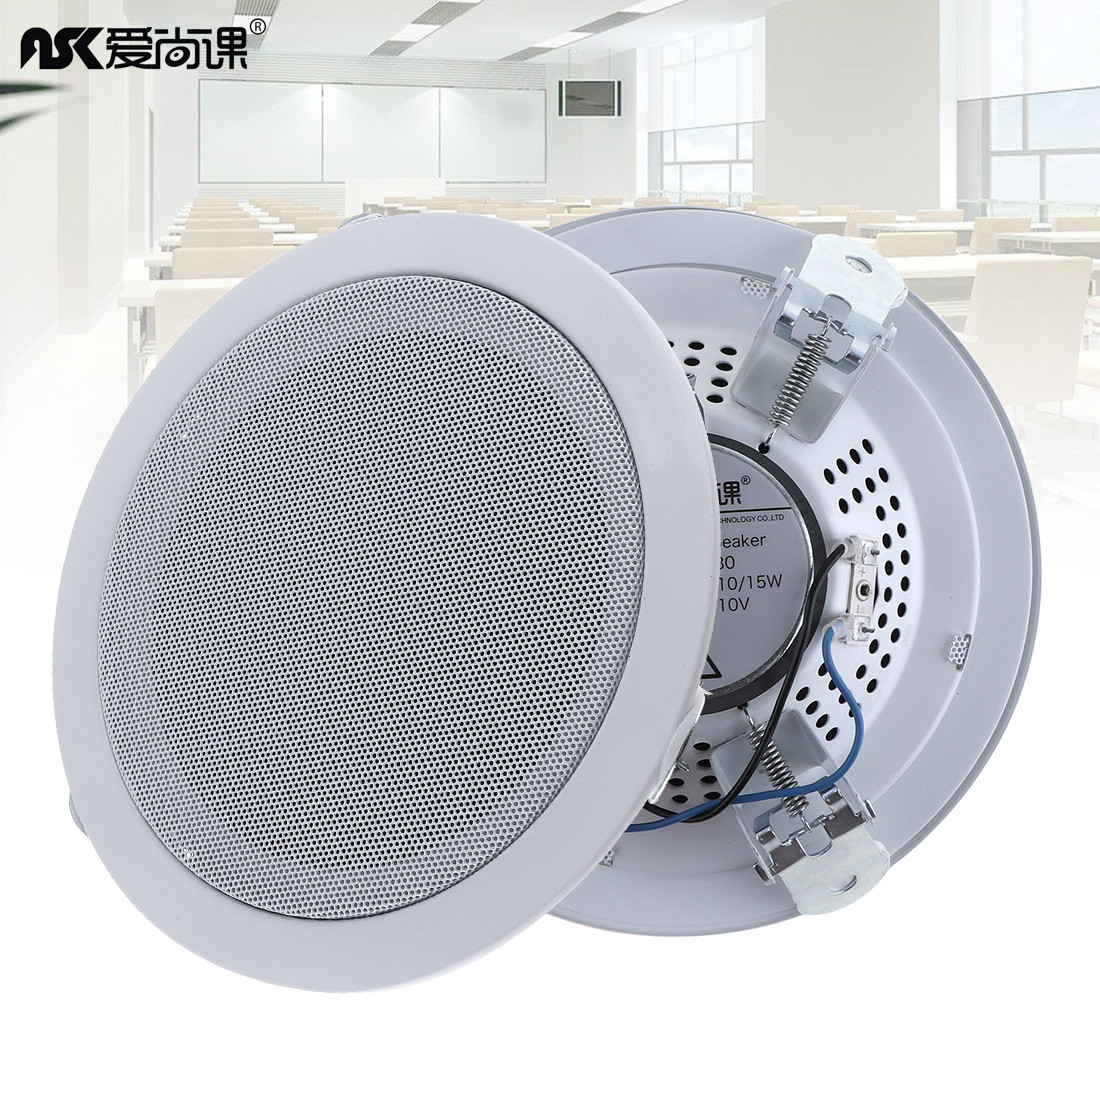 2pcs 6 Inch 15W Metal Microphone Input USB MP3 Player Ceiling Speaker Public Broadcast Background Music Loudspeaker for Home